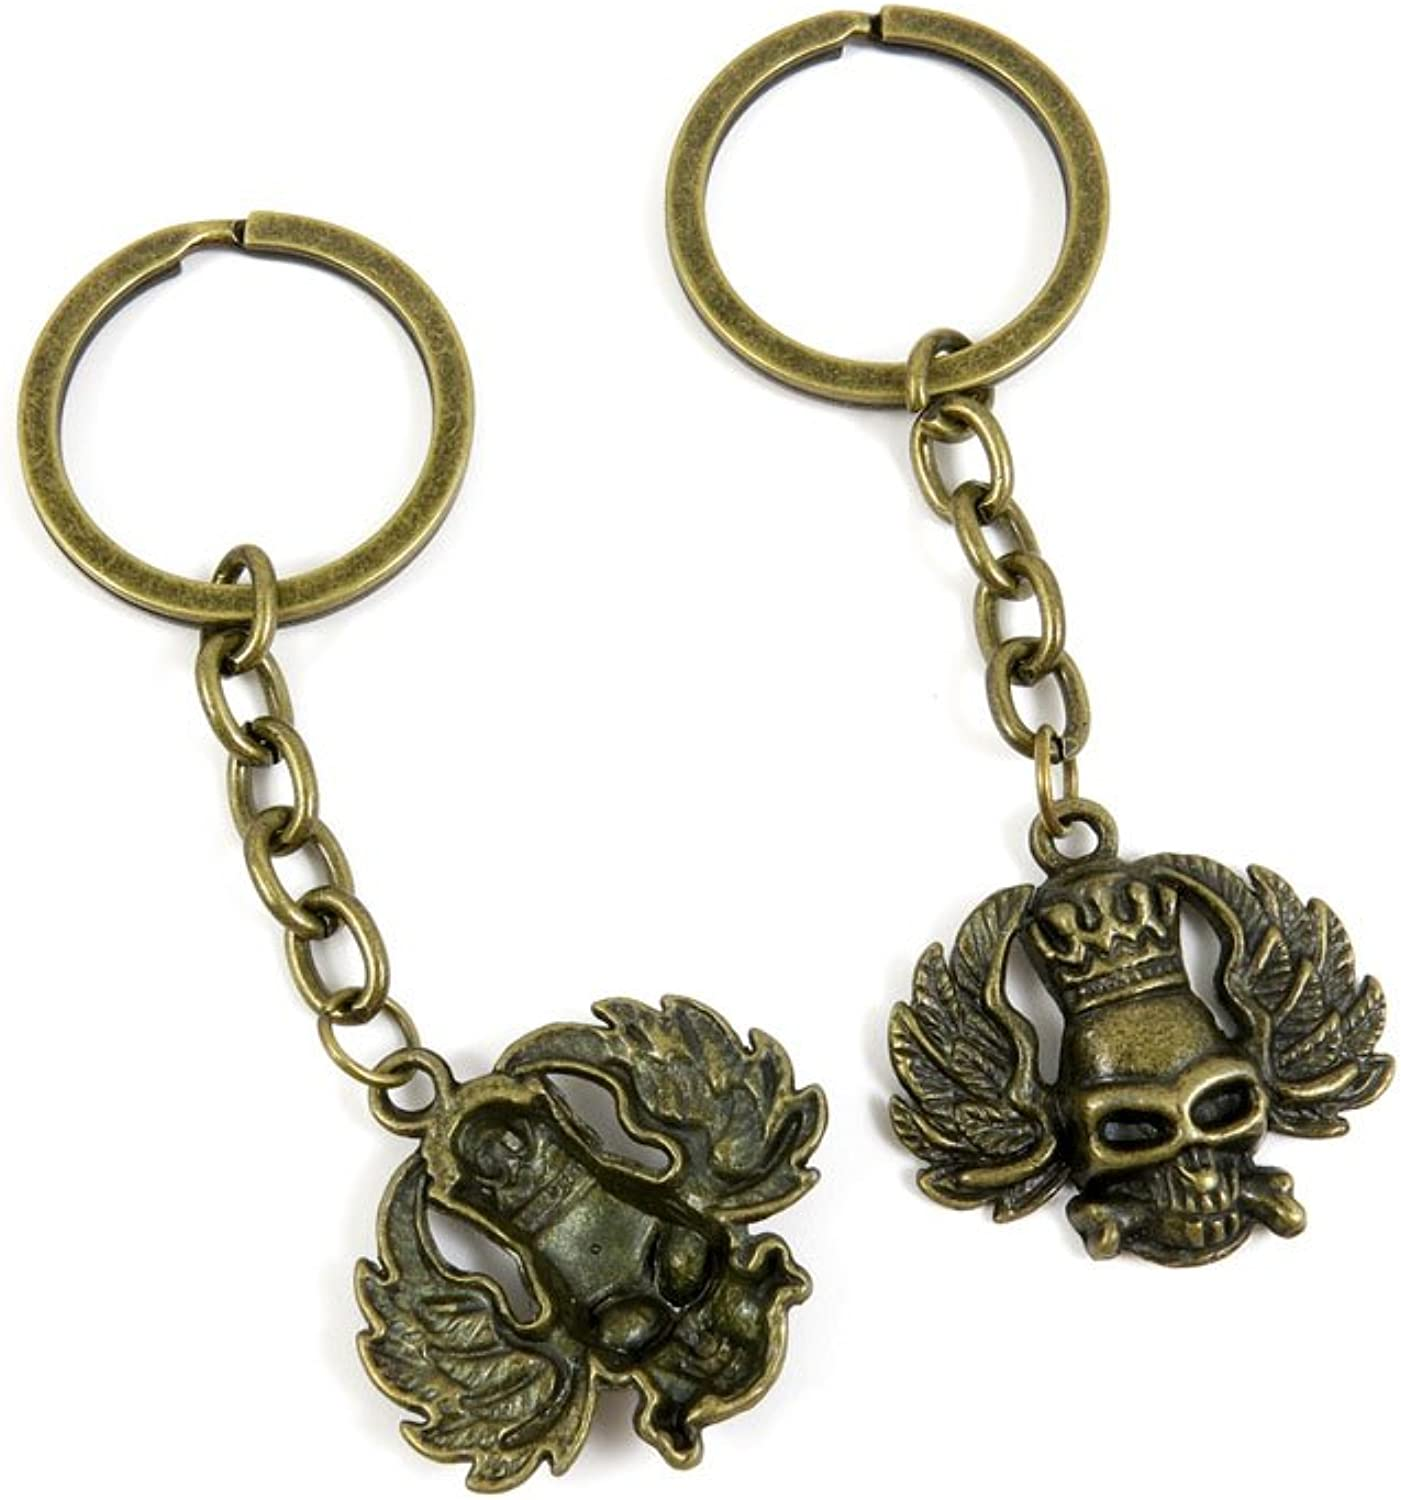 150 Pieces Fashion Jewelry Keyring Keychain Door Car Key Tag Ring Chain Supplier Supply Wholesale Bulk Lots H1PQ4 King Skull